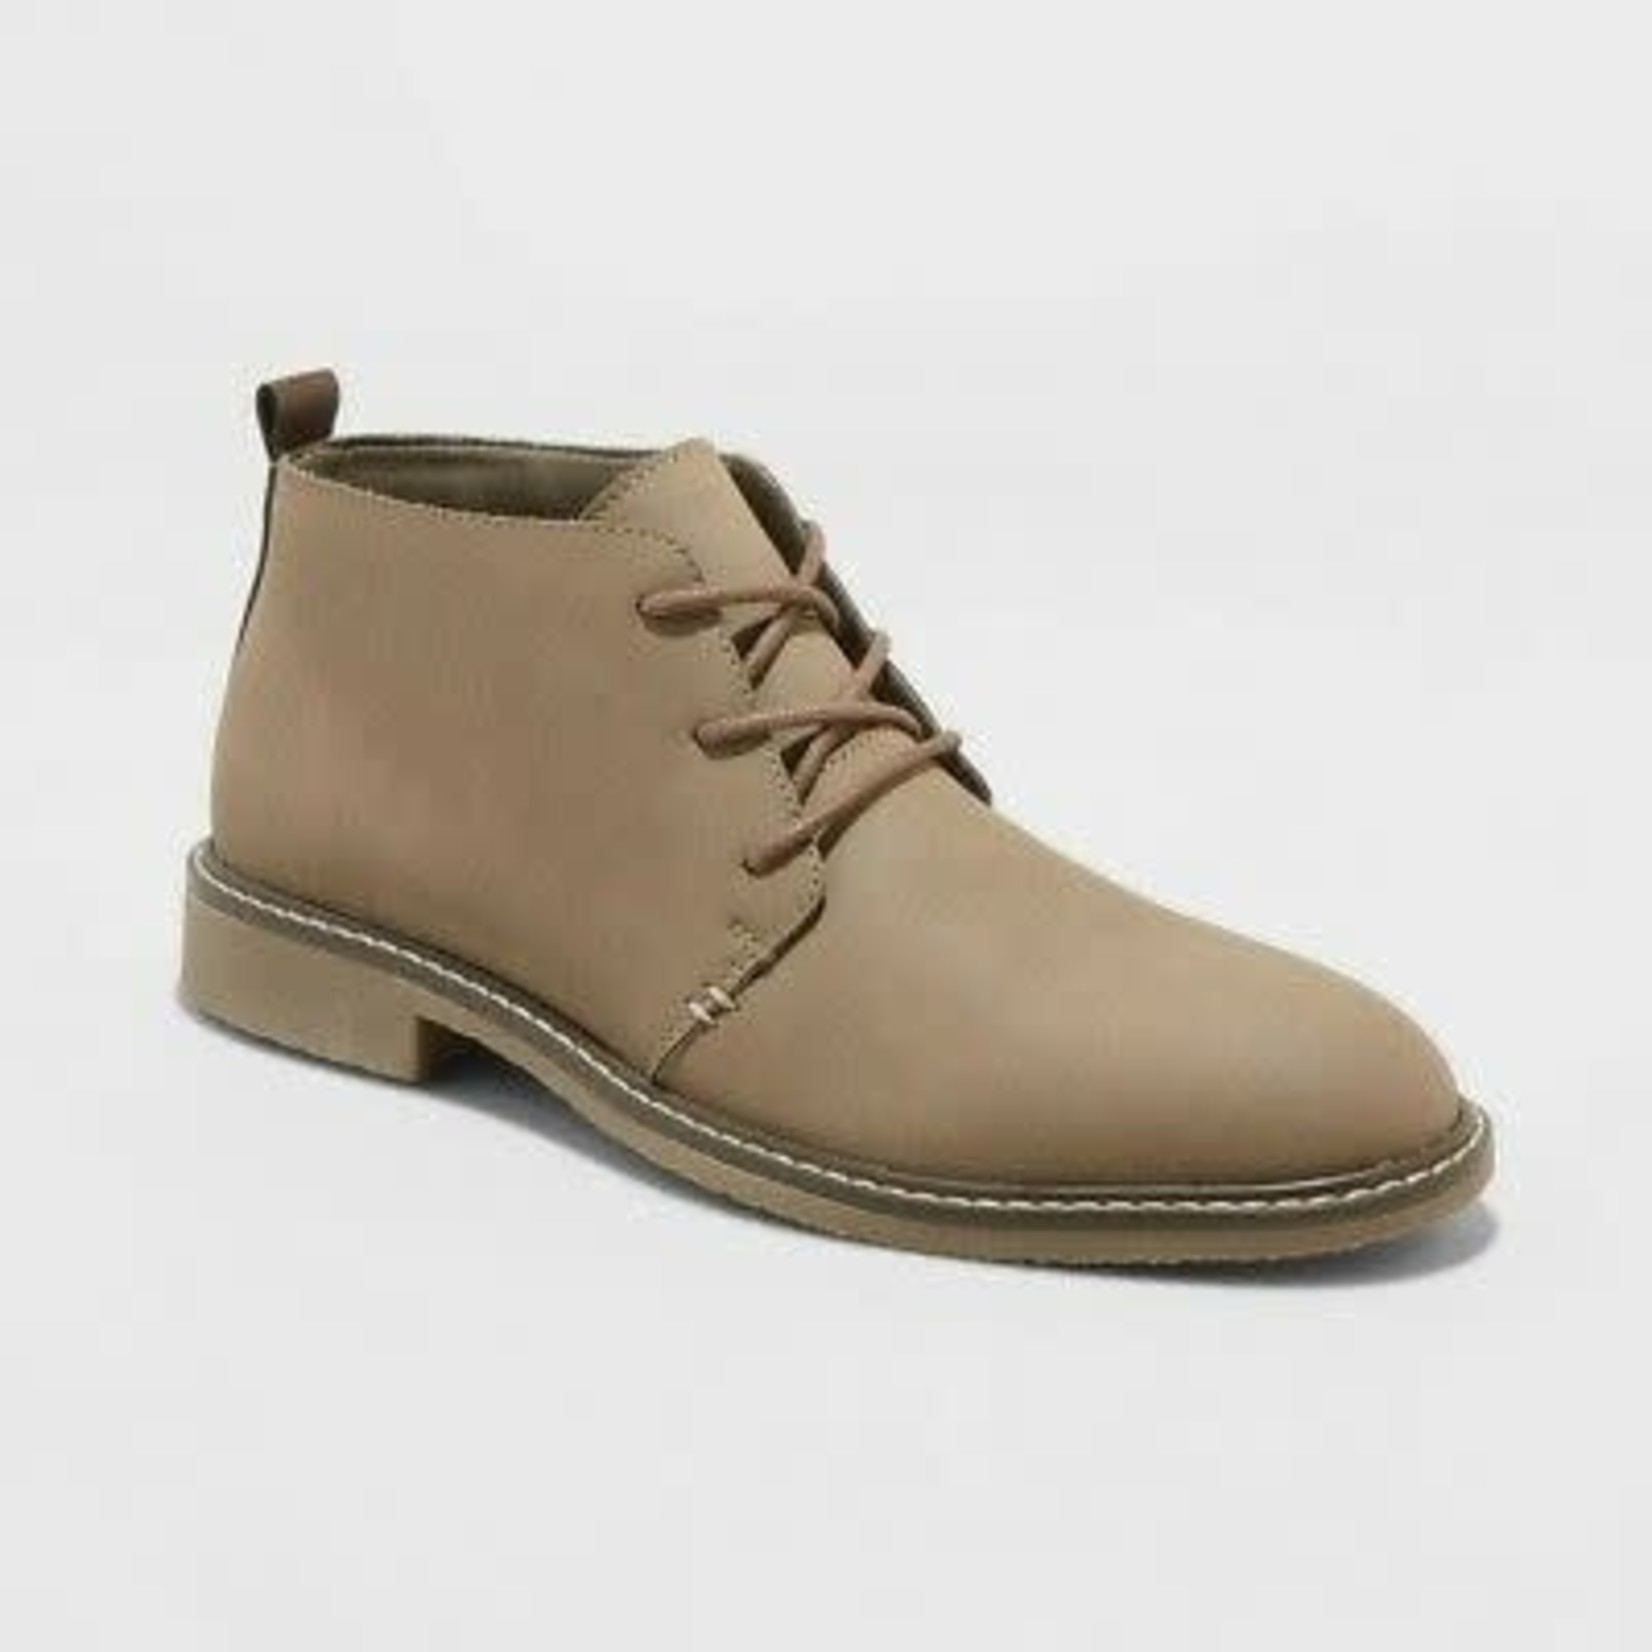 Goodfellow Men's Jahlin Boots Taupe -12